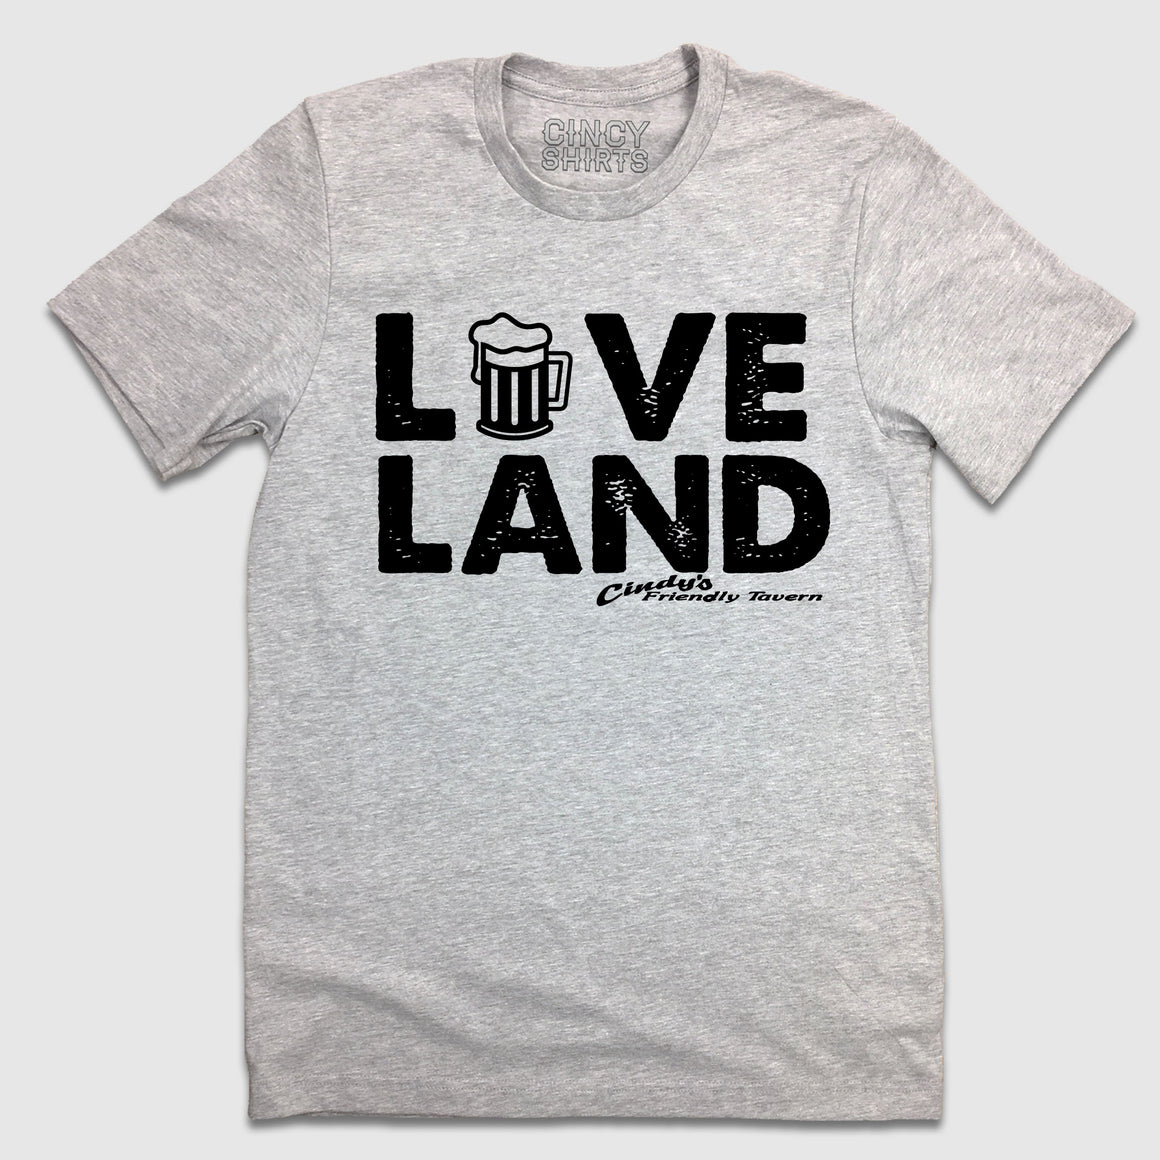 Love Loveland - Cindy's Friendly Tavern T-shirt